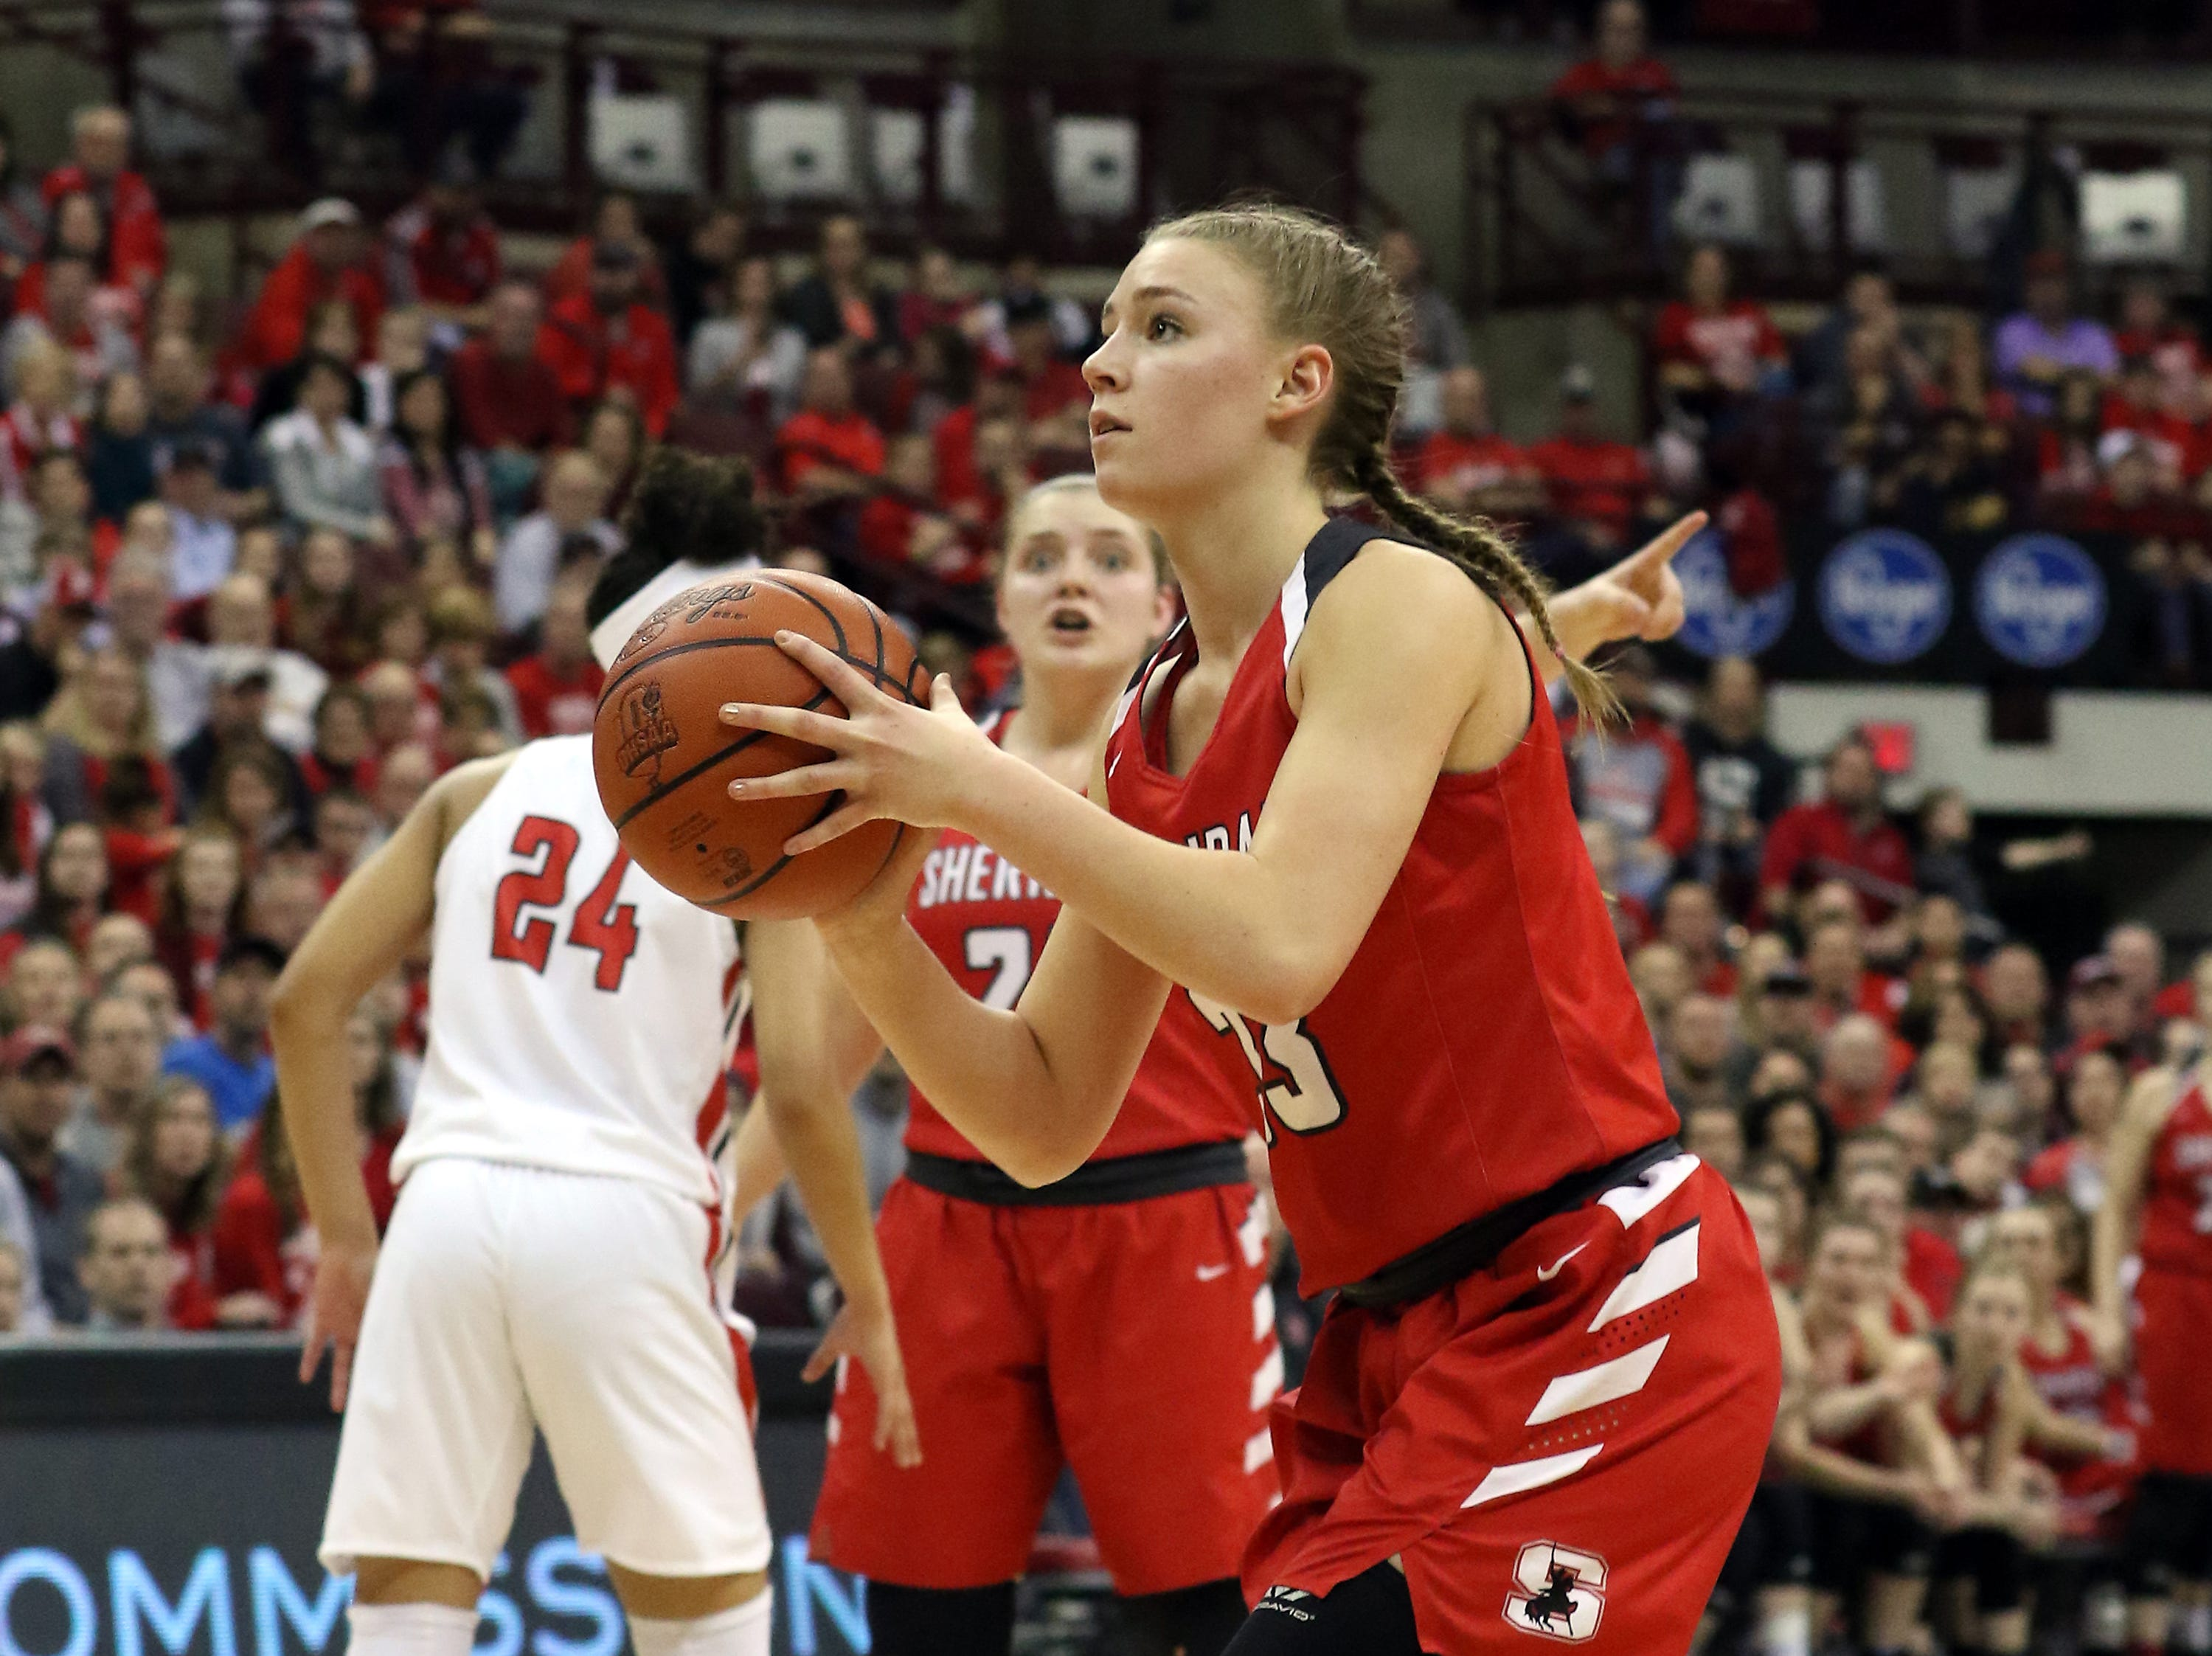 Sheridan's Emma Conrad takes aim against Toledo Rogers during the DII state semis in Columbus on Thursday.